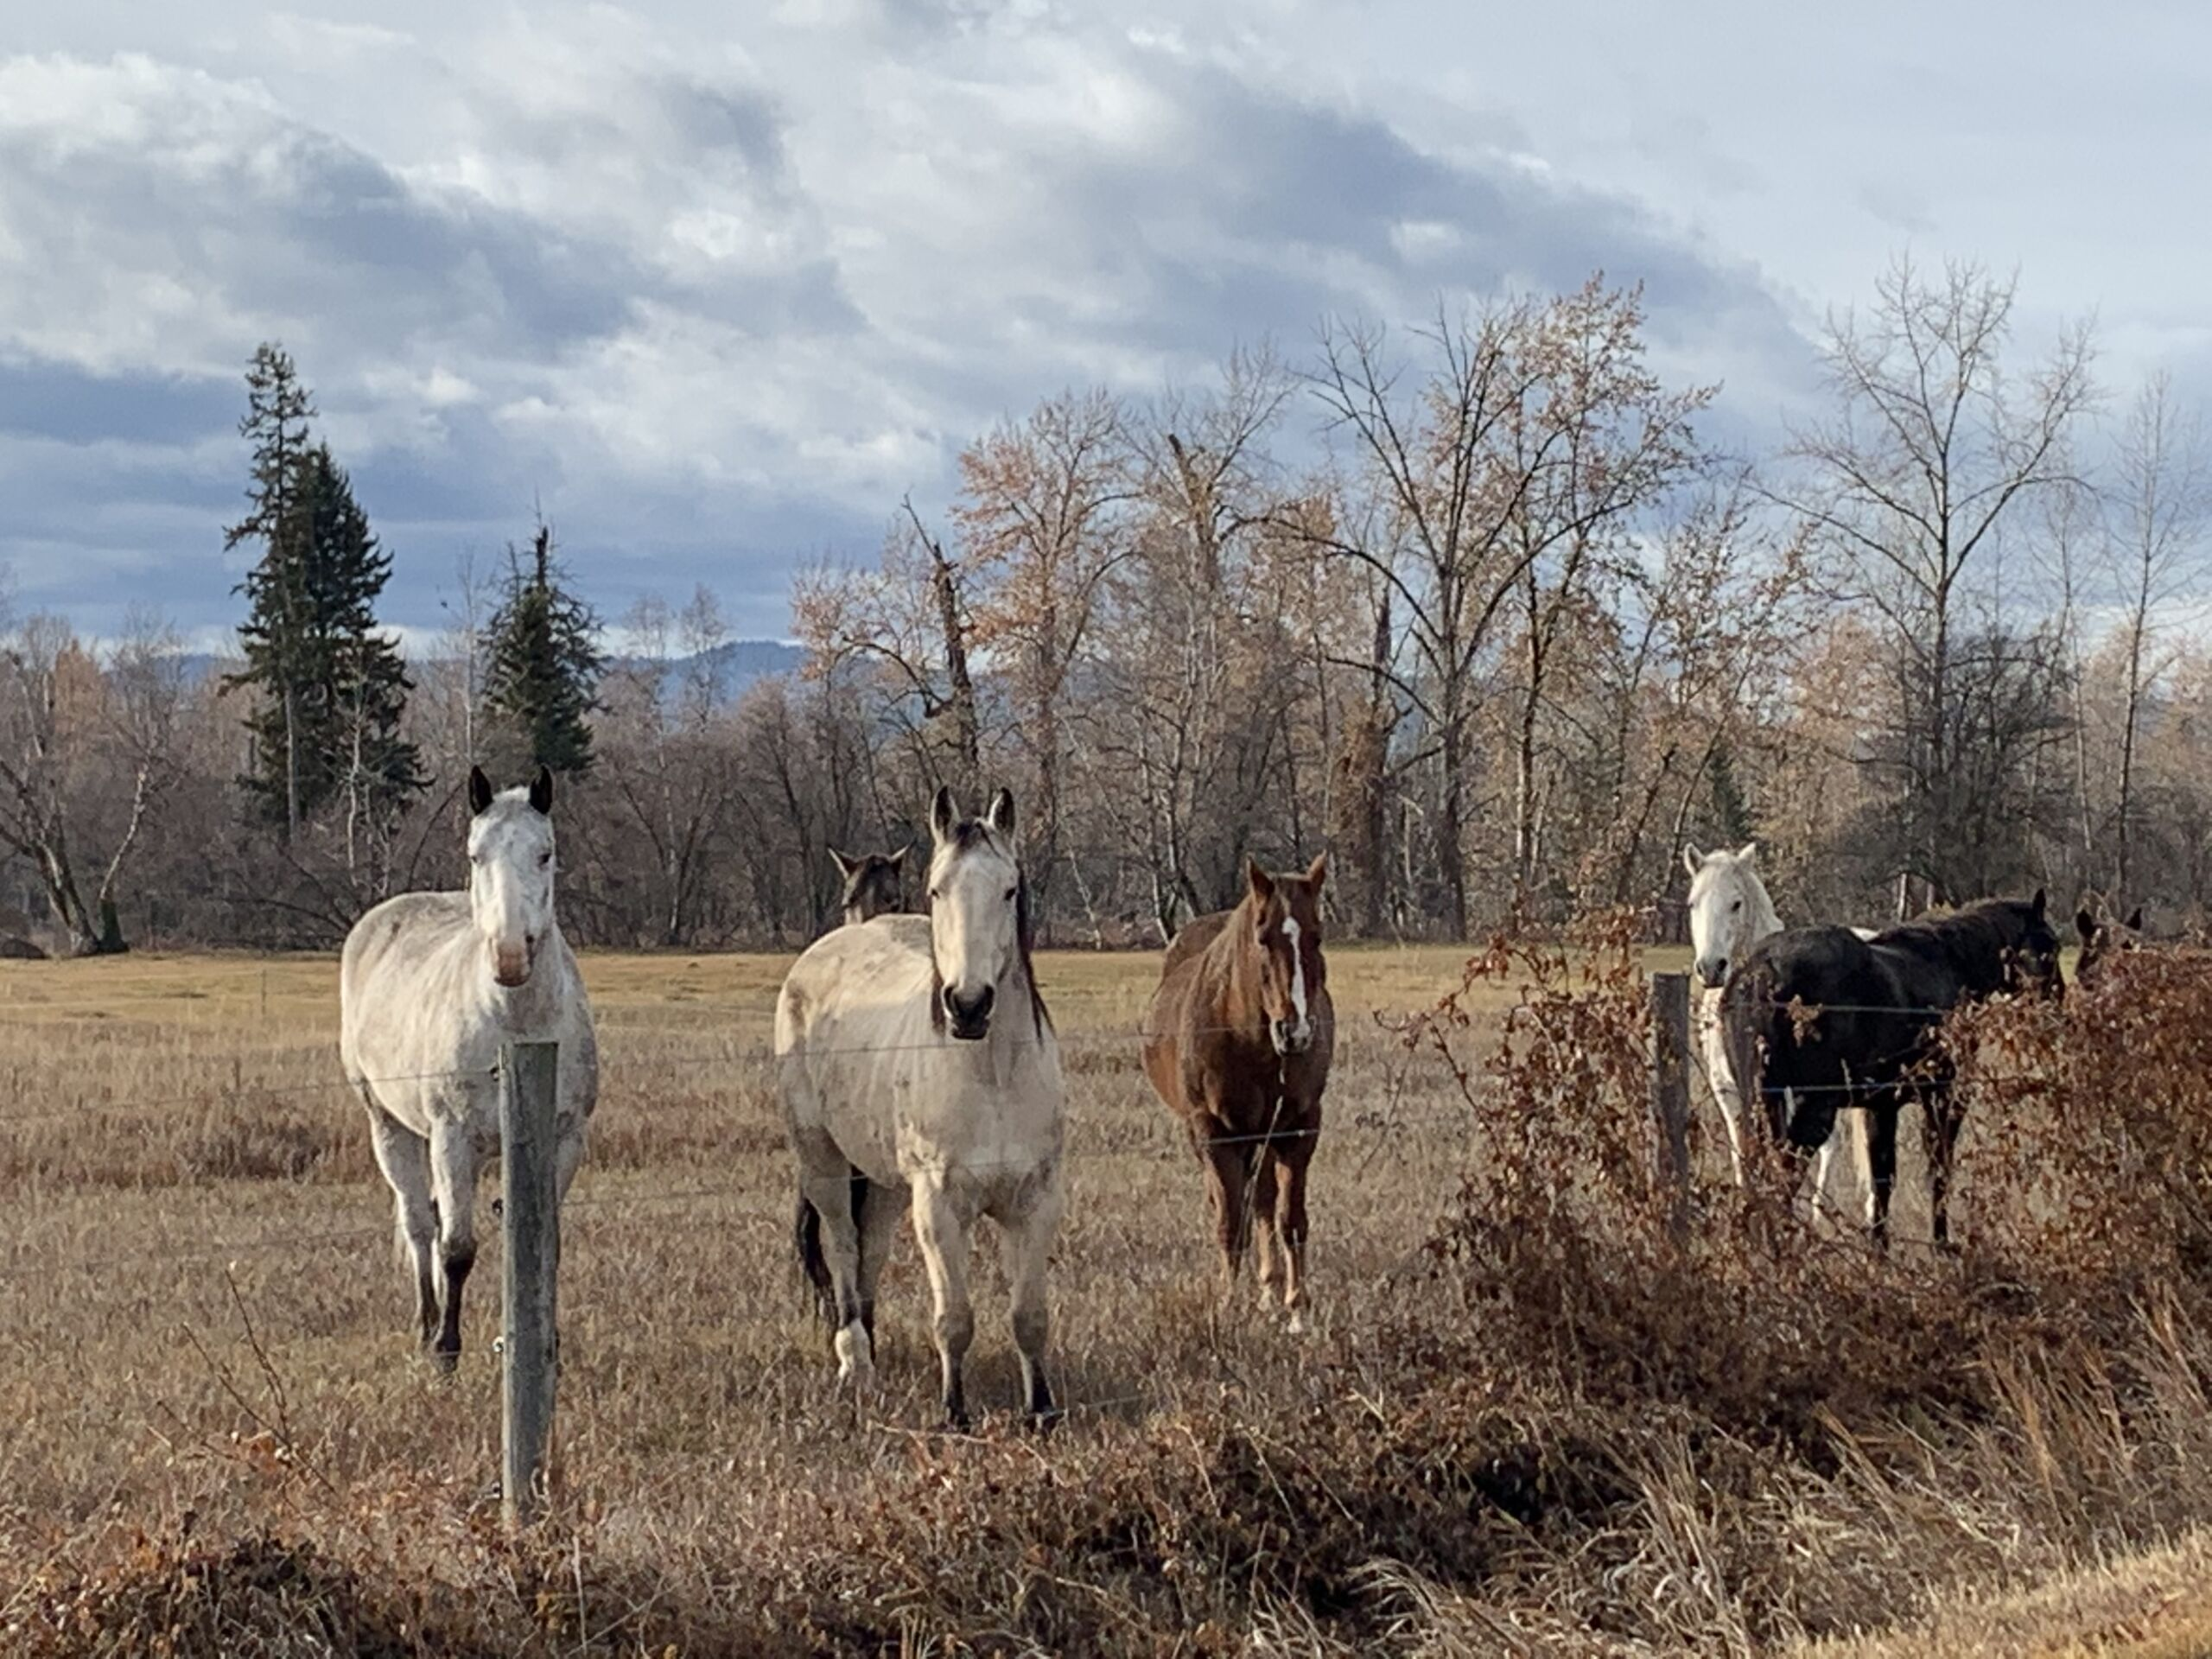 So you want land with views? photos of horses